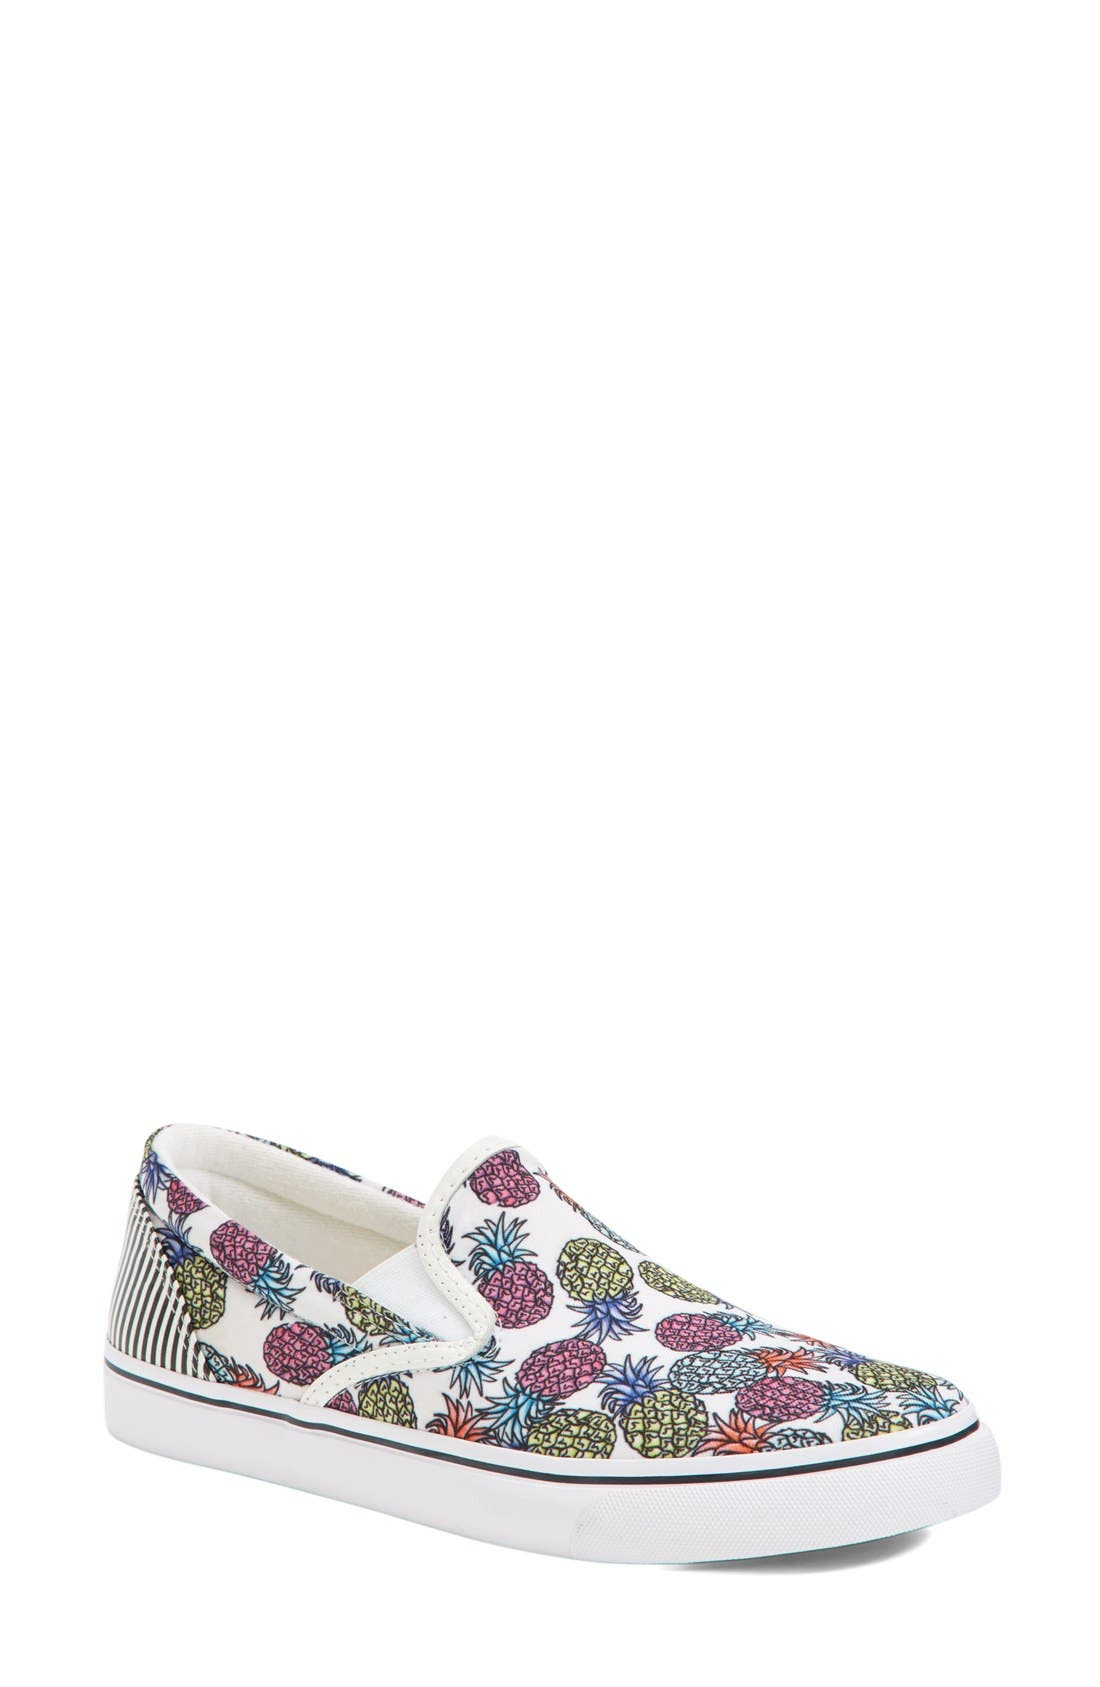 Main Image - Sophia Webster 'Adele - Pineapple' Satin Slip-On Sneaker (Women)